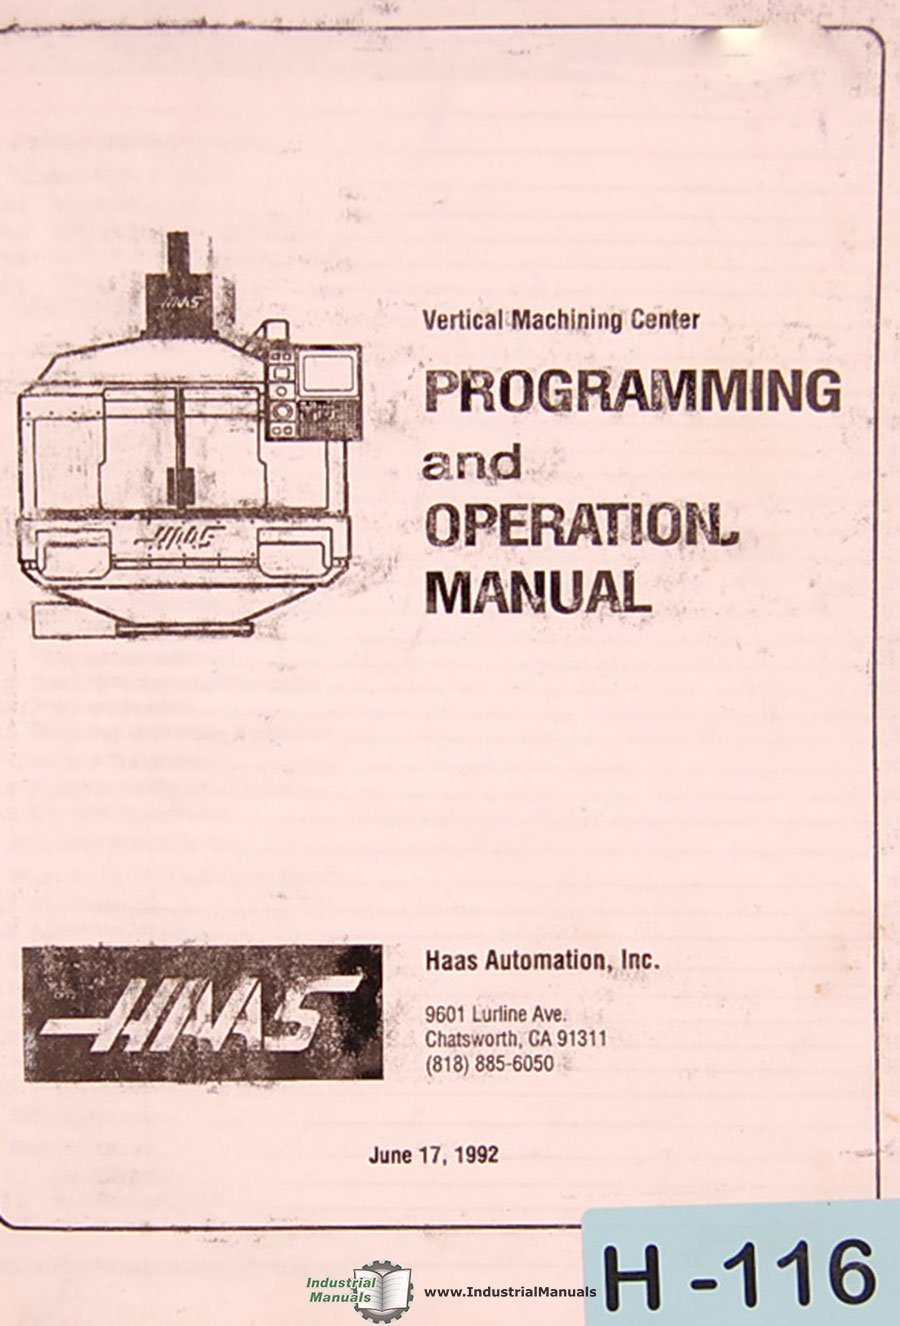 Haas Vf Vmc Program Wiring And Operations Manual Diagram Books